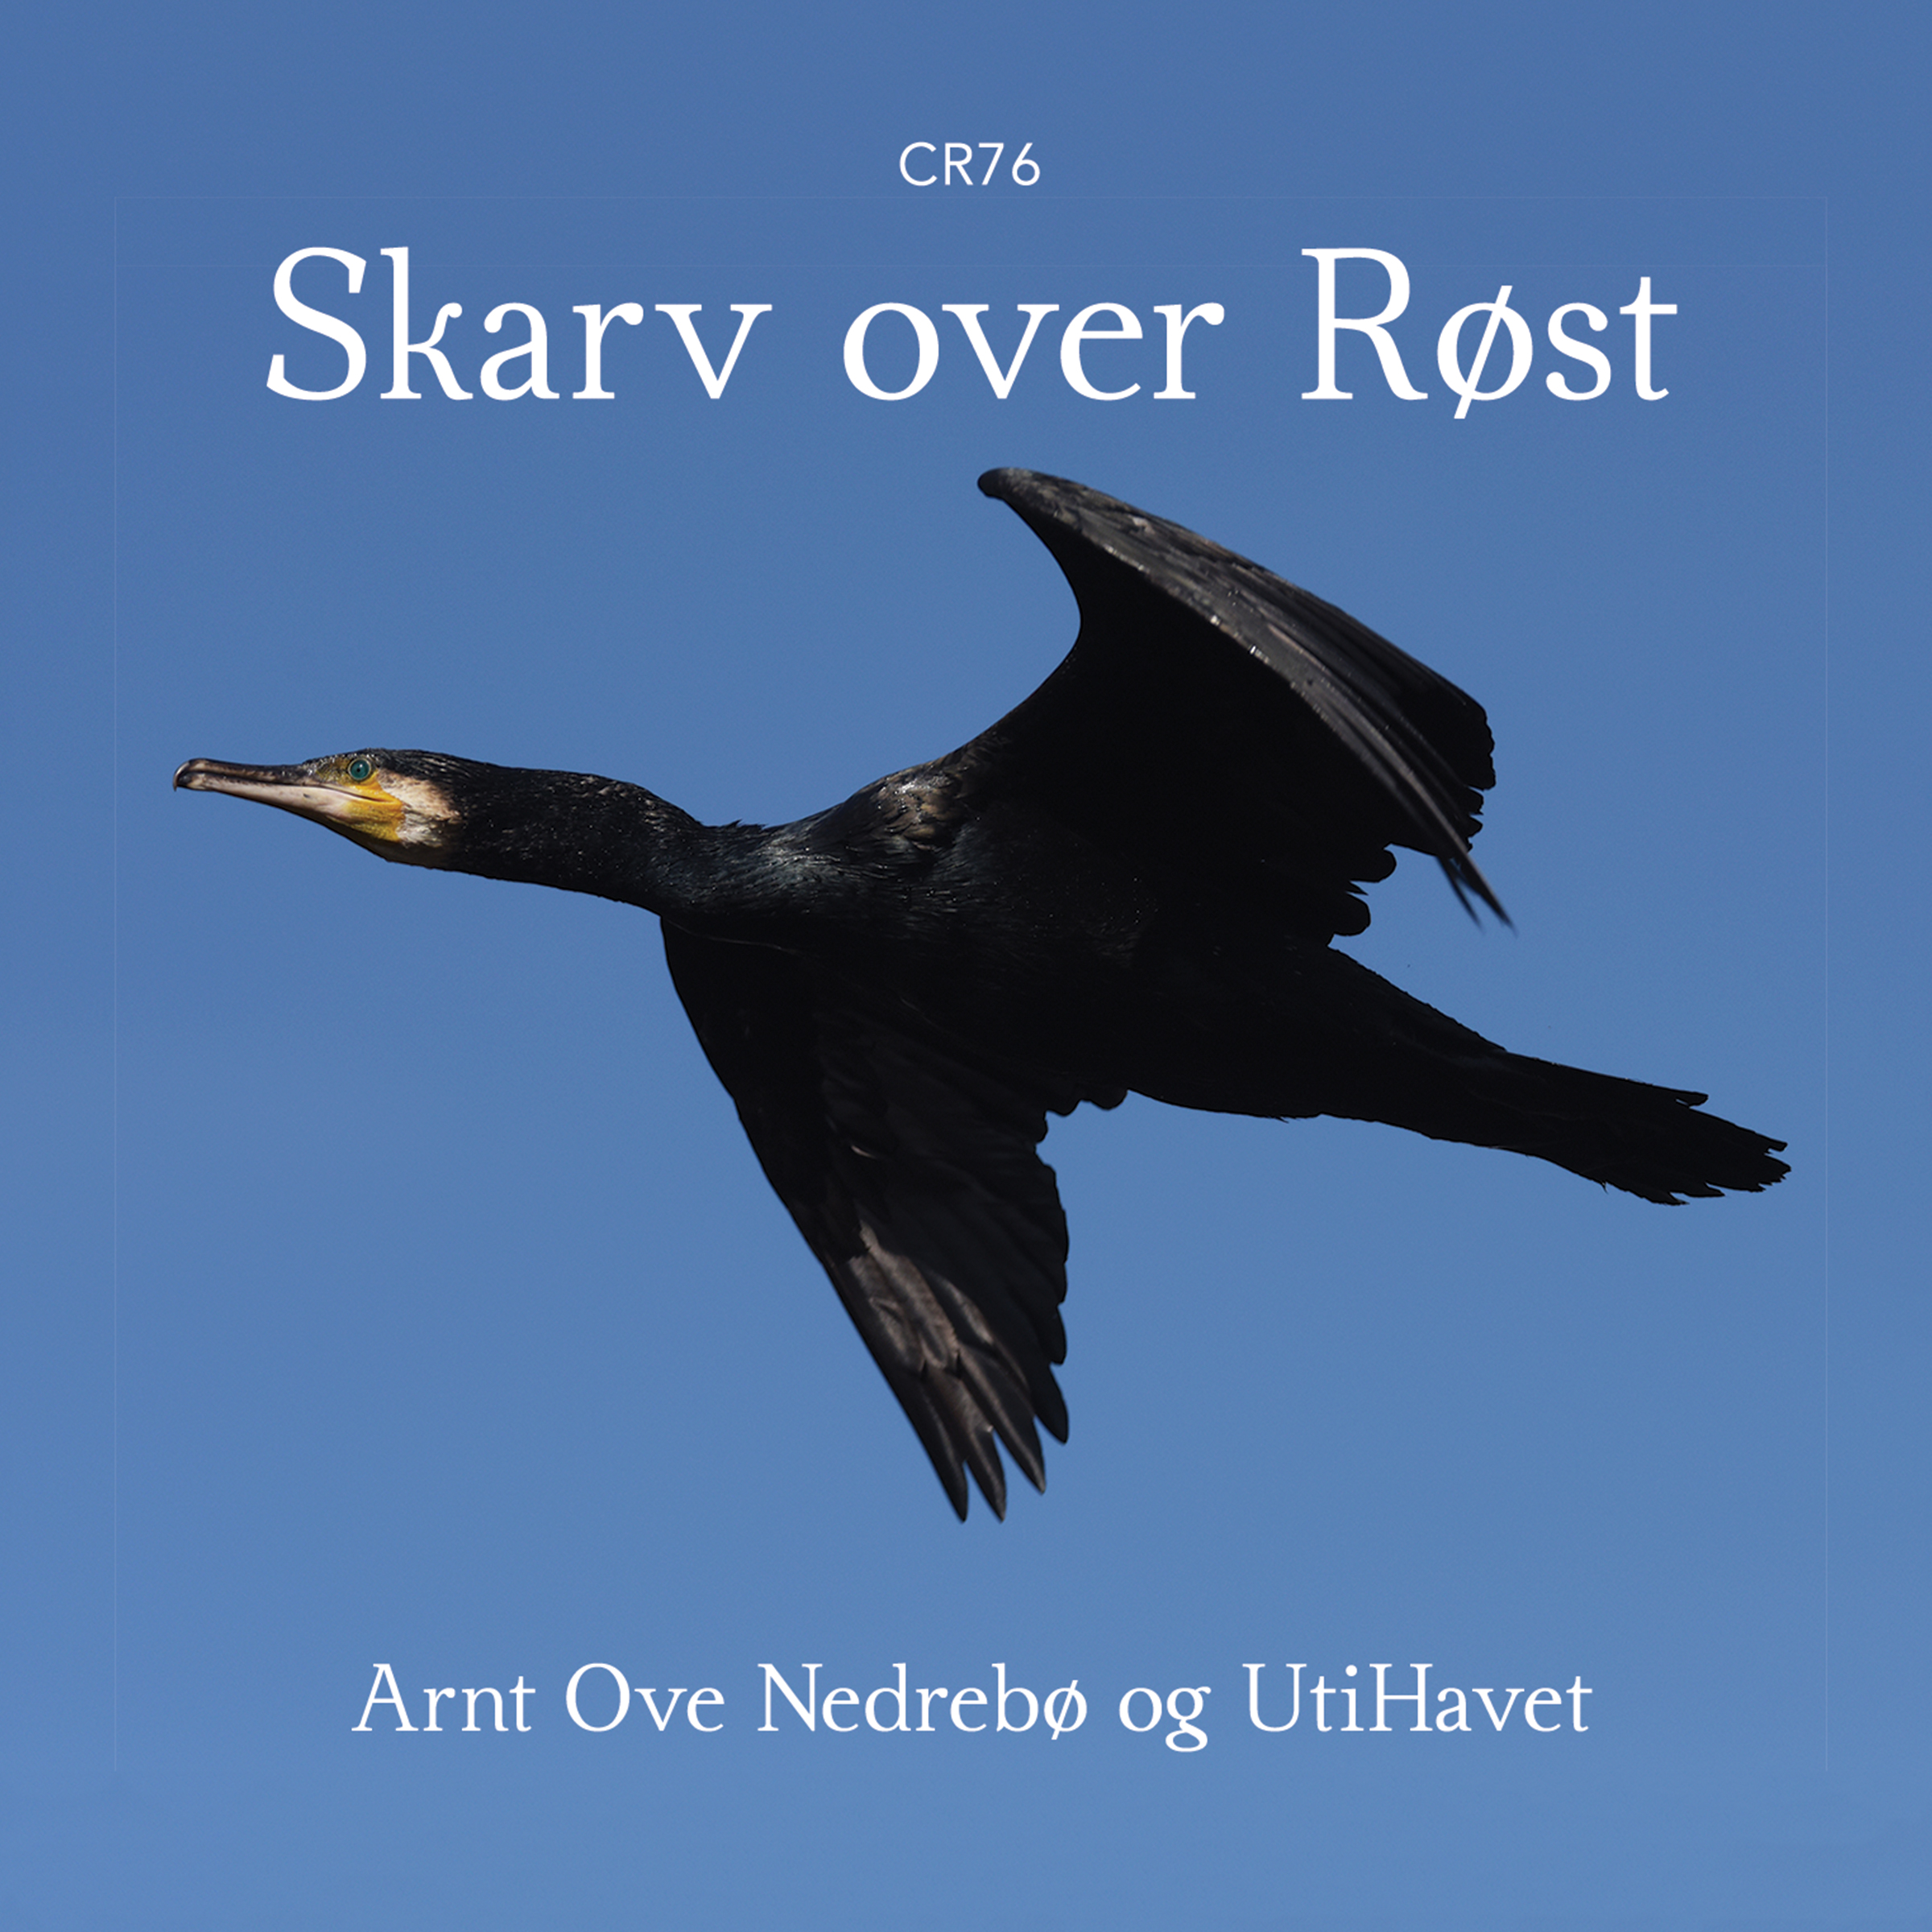 Skarv over Røst